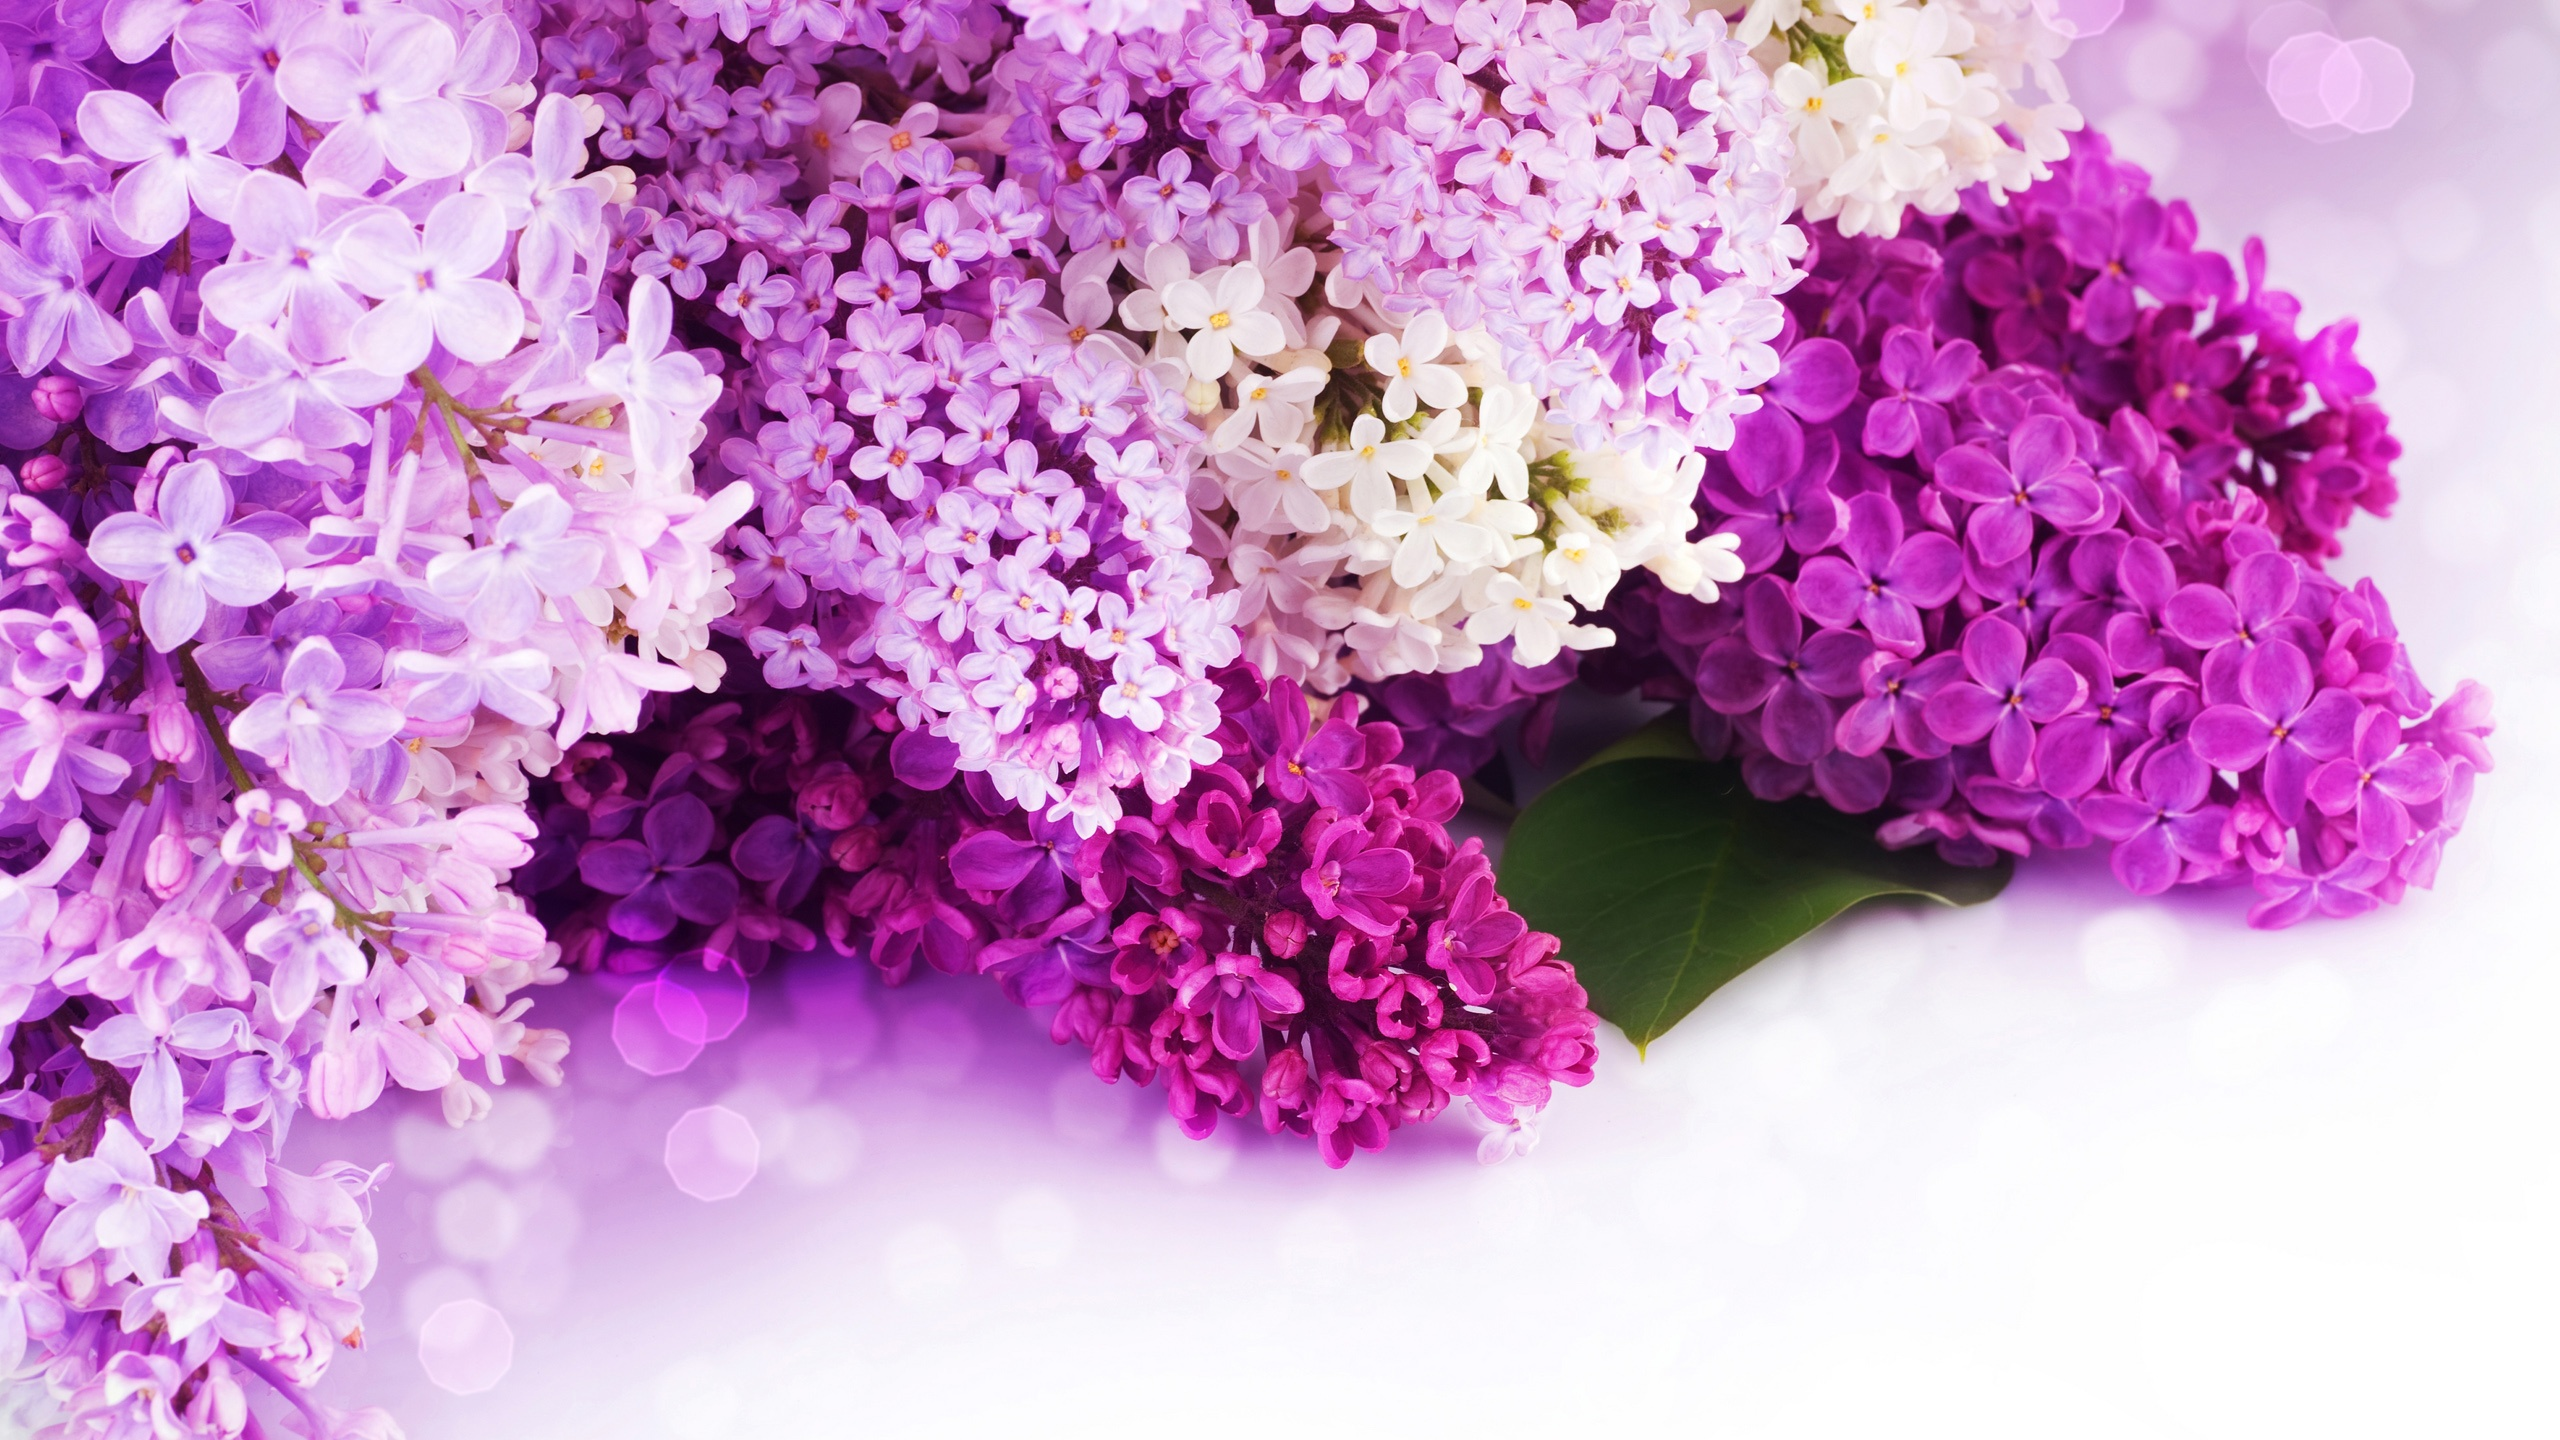 lilac flower wallpaper jpg - photo #31